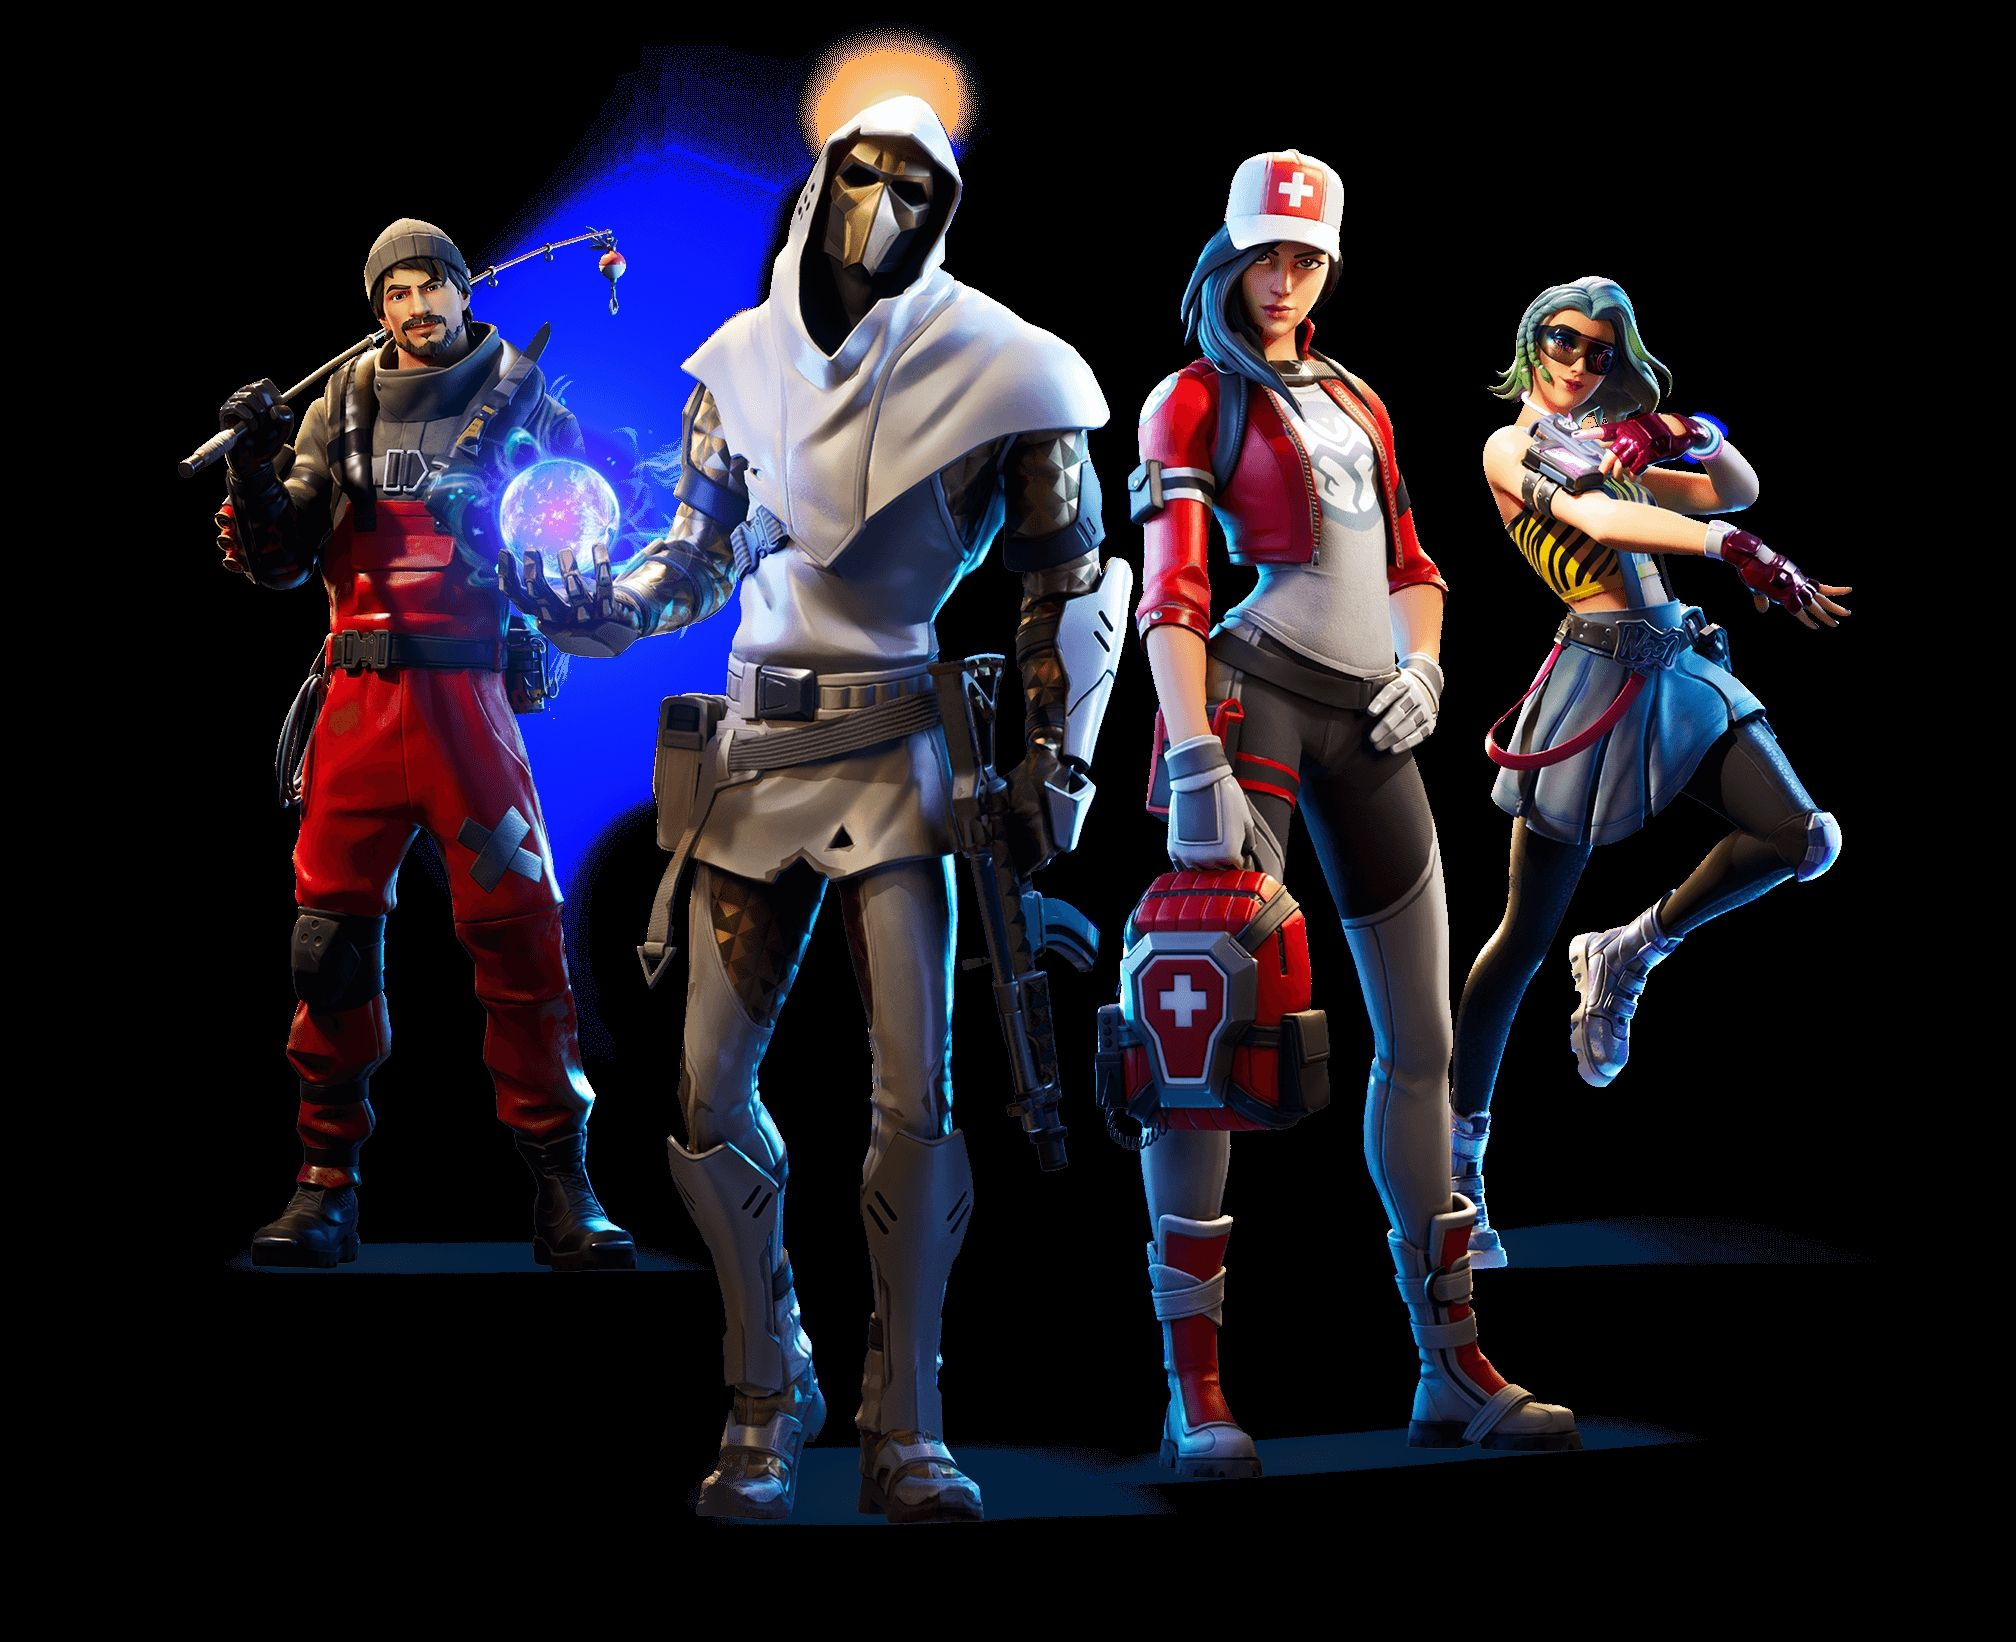 Skin Bleuvage Fortnite Saison 1 Chapitre 2 Fortnite Chapter 2 Season 1 Di 2020